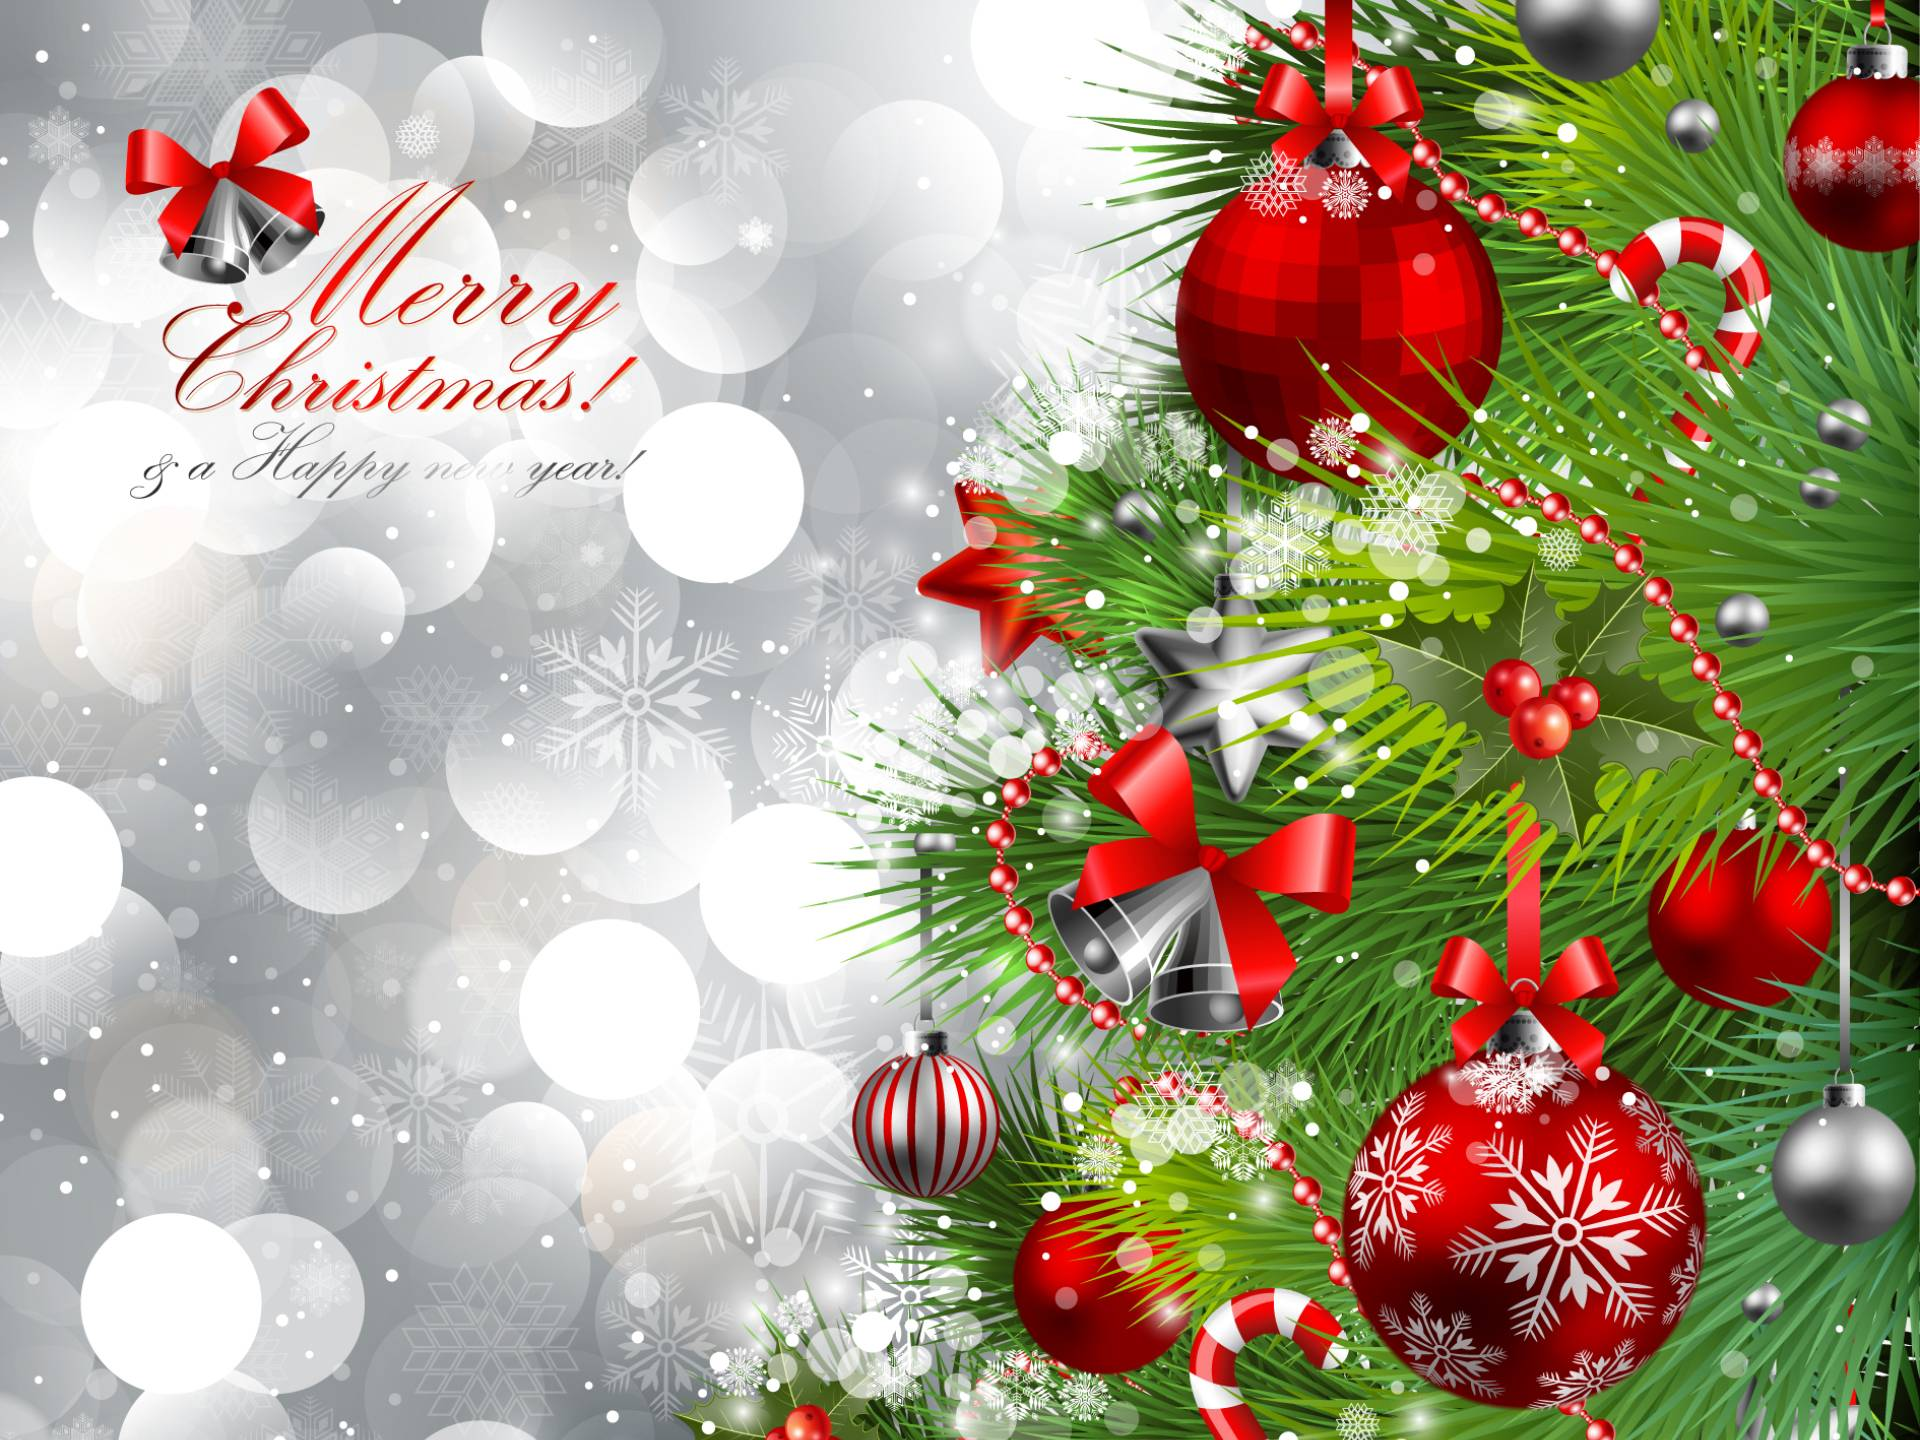 Moving Merry Christmas Wallpaper Christmas Pictures For...